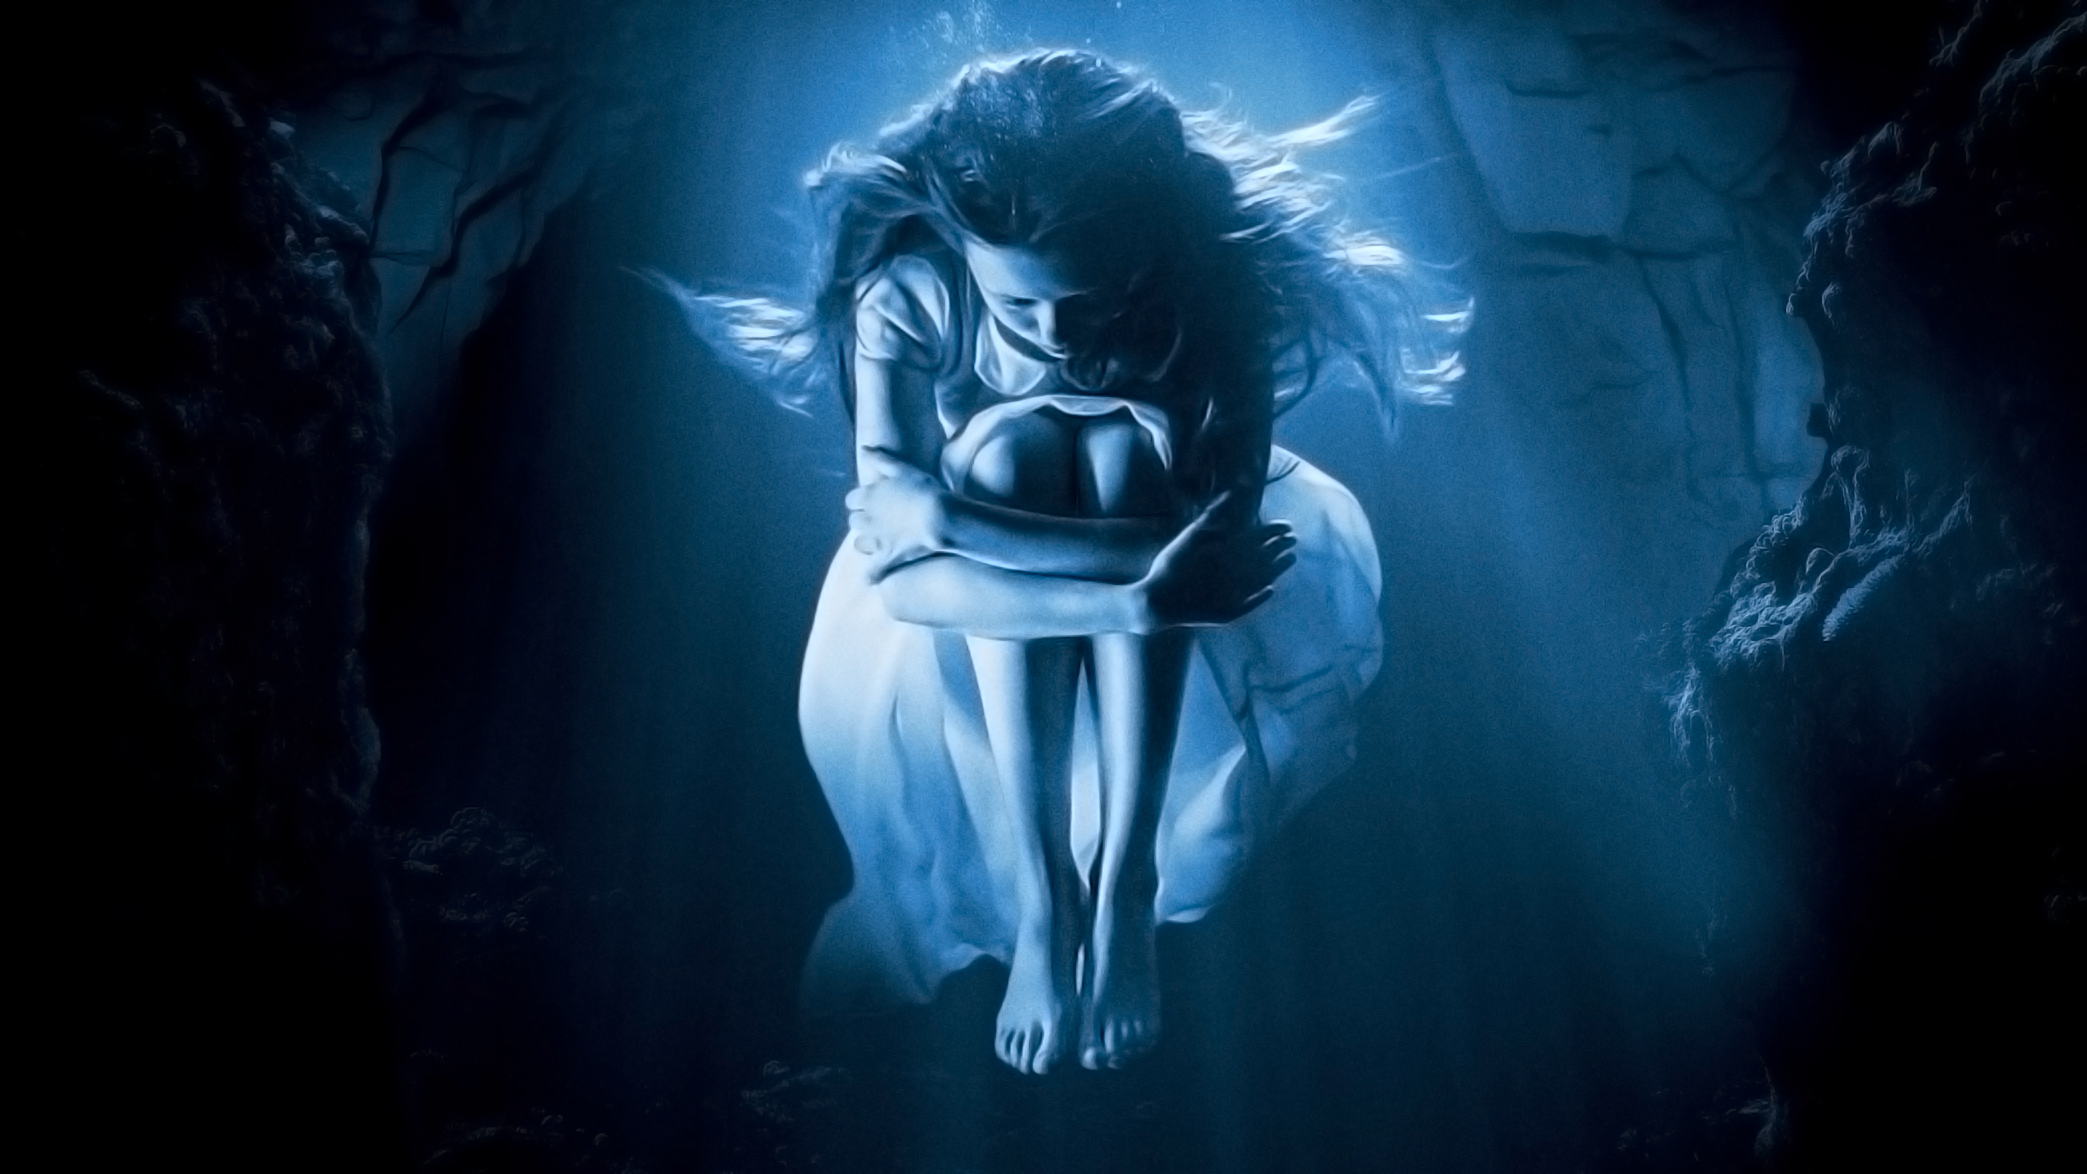 Gothic Girl Wallpaper 640x960 Cure For Wellness 2017 Movie Hd Movies 4k Wallpapers